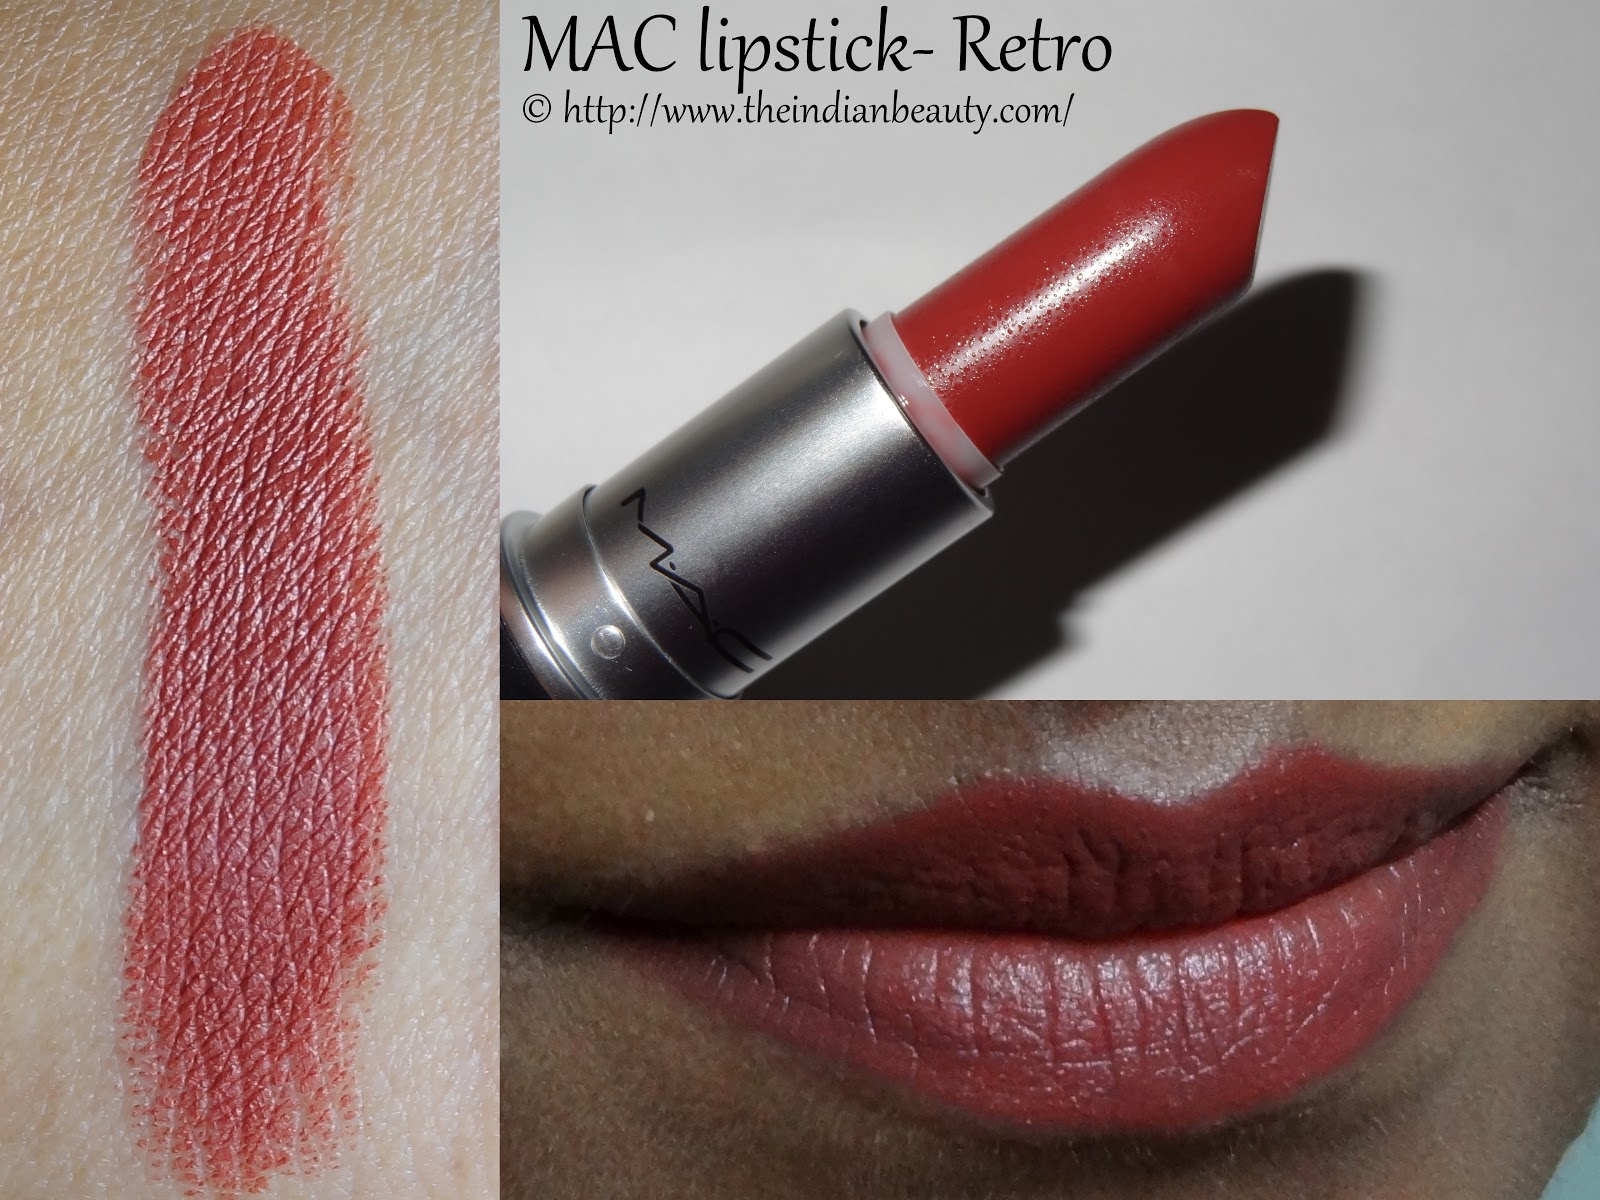 5 Mac Lipsticks Swatches And My Recommendations For Dusky Skin Tone The Indian Beauty Blog